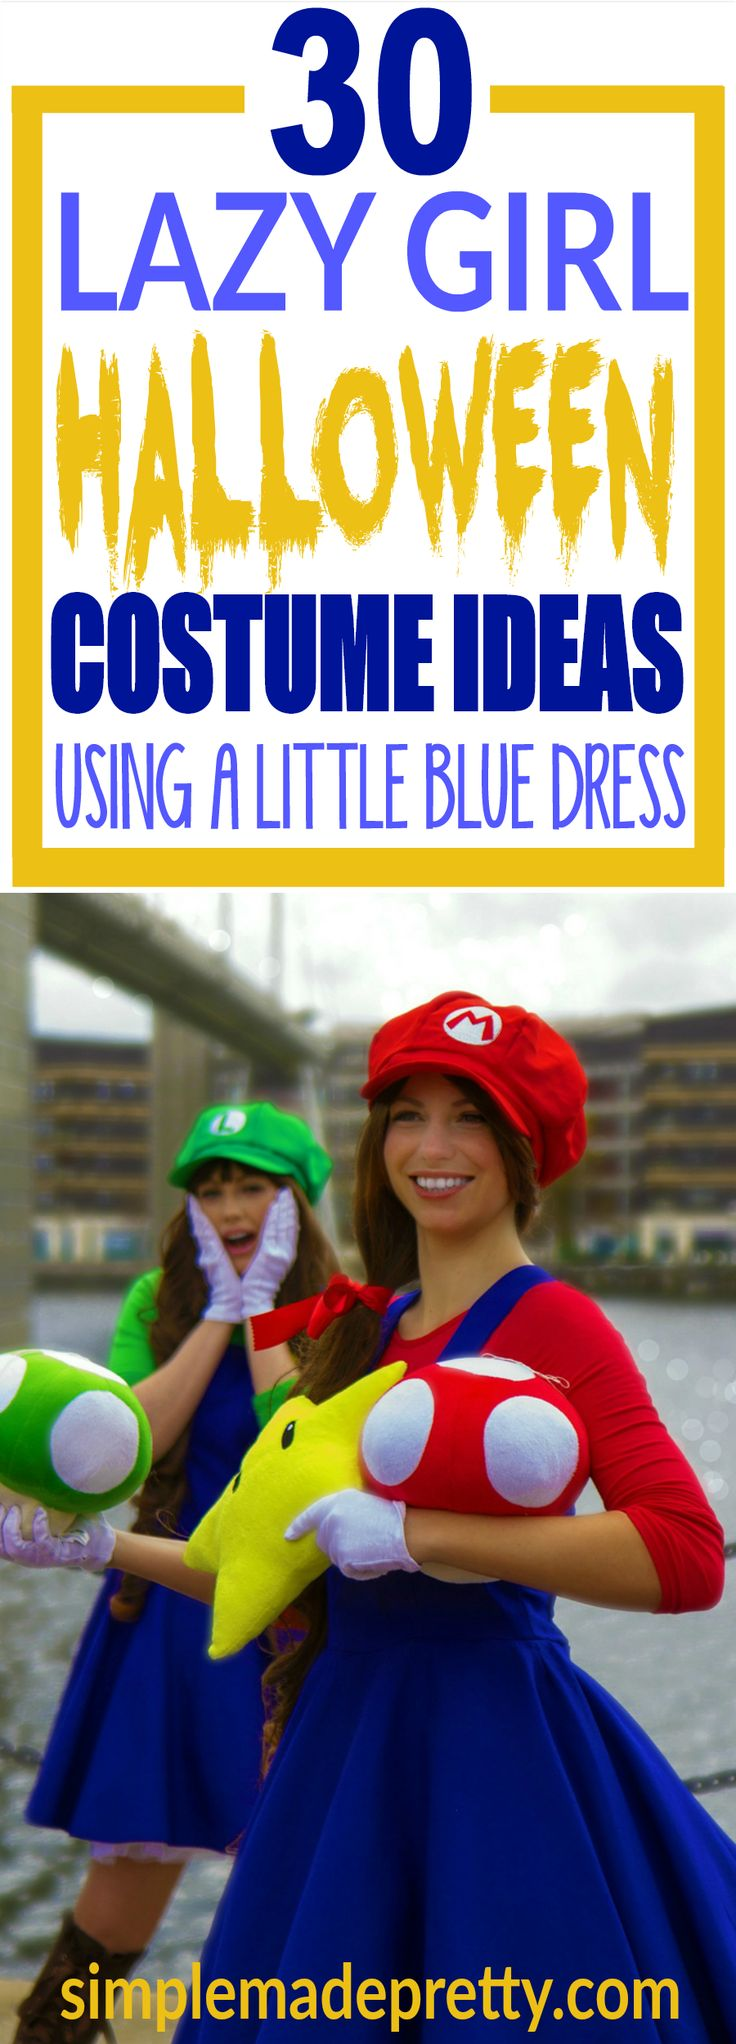 These lazy girl Halloween costume ideas are easy to pull together for a last minute Halloween costume idea. I love this Super Mario Brothers Halloween costume for girls! There are so many other Halloween costume ideas for women in this post!